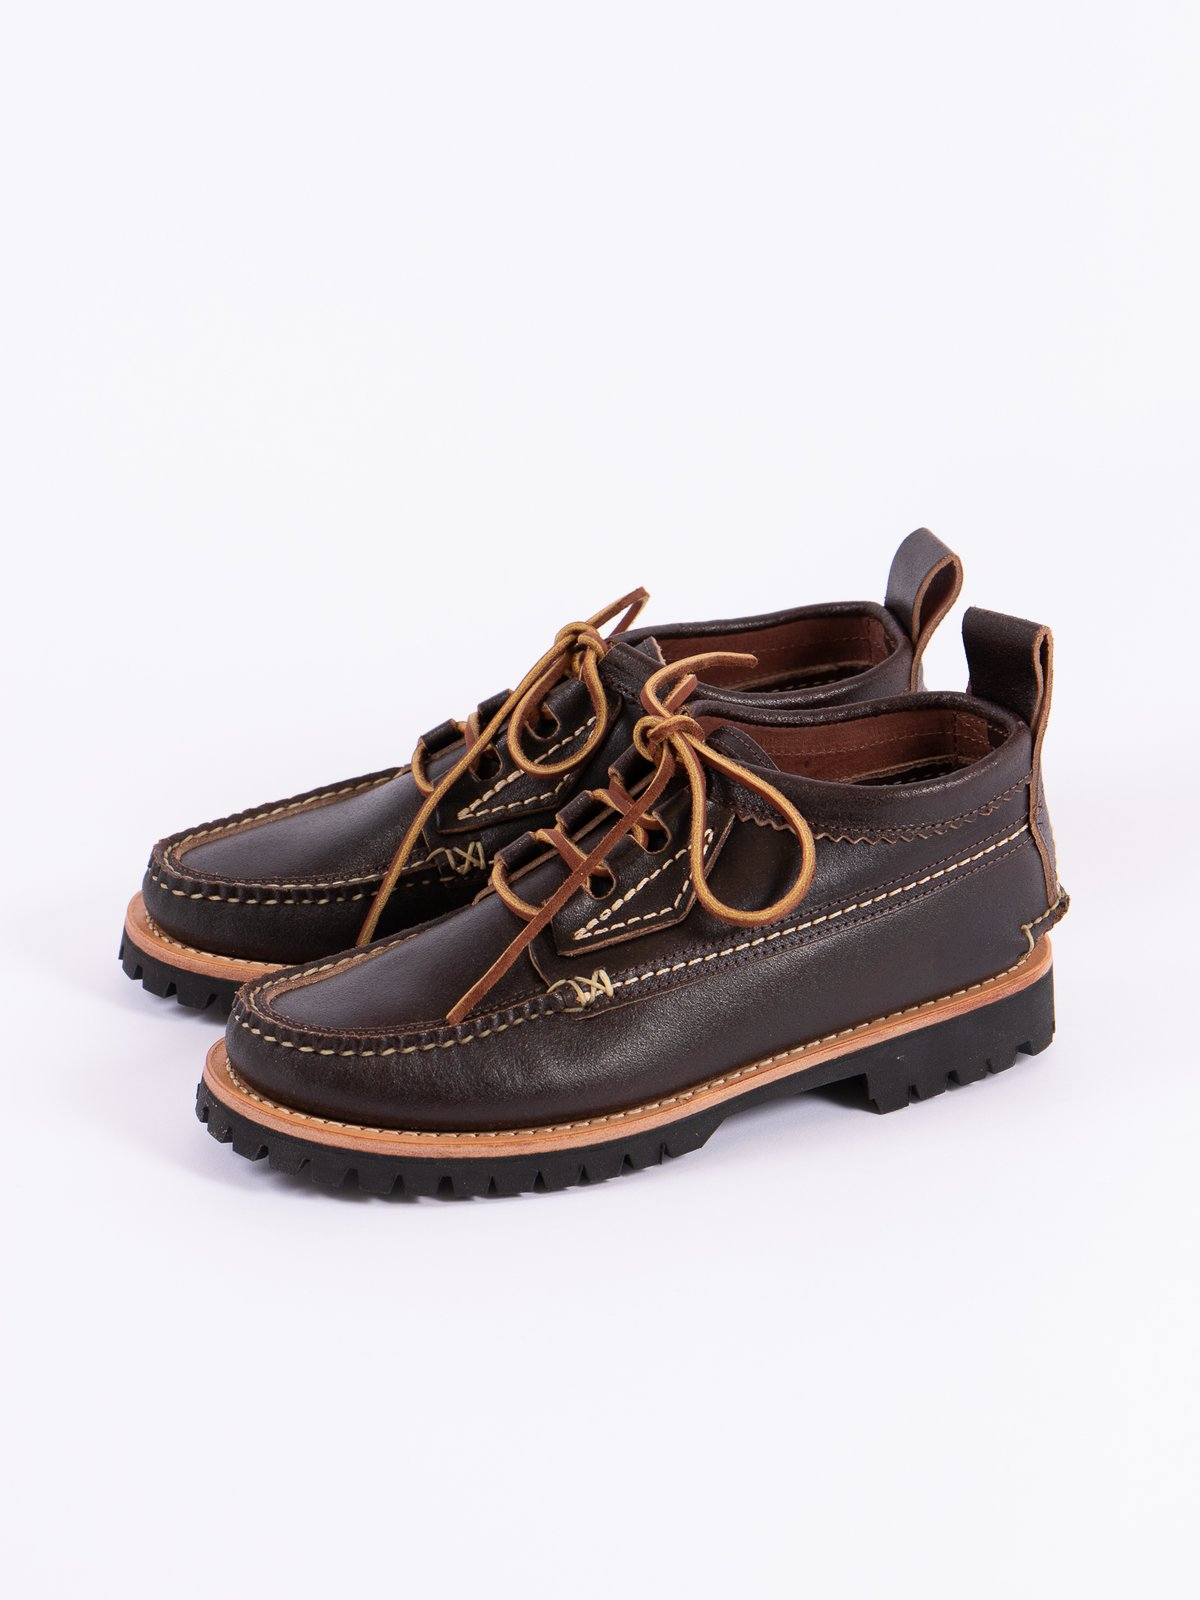 Wax Brown Maine Guide Ox Quebec Eyestay Boot Exclusive - Image 3